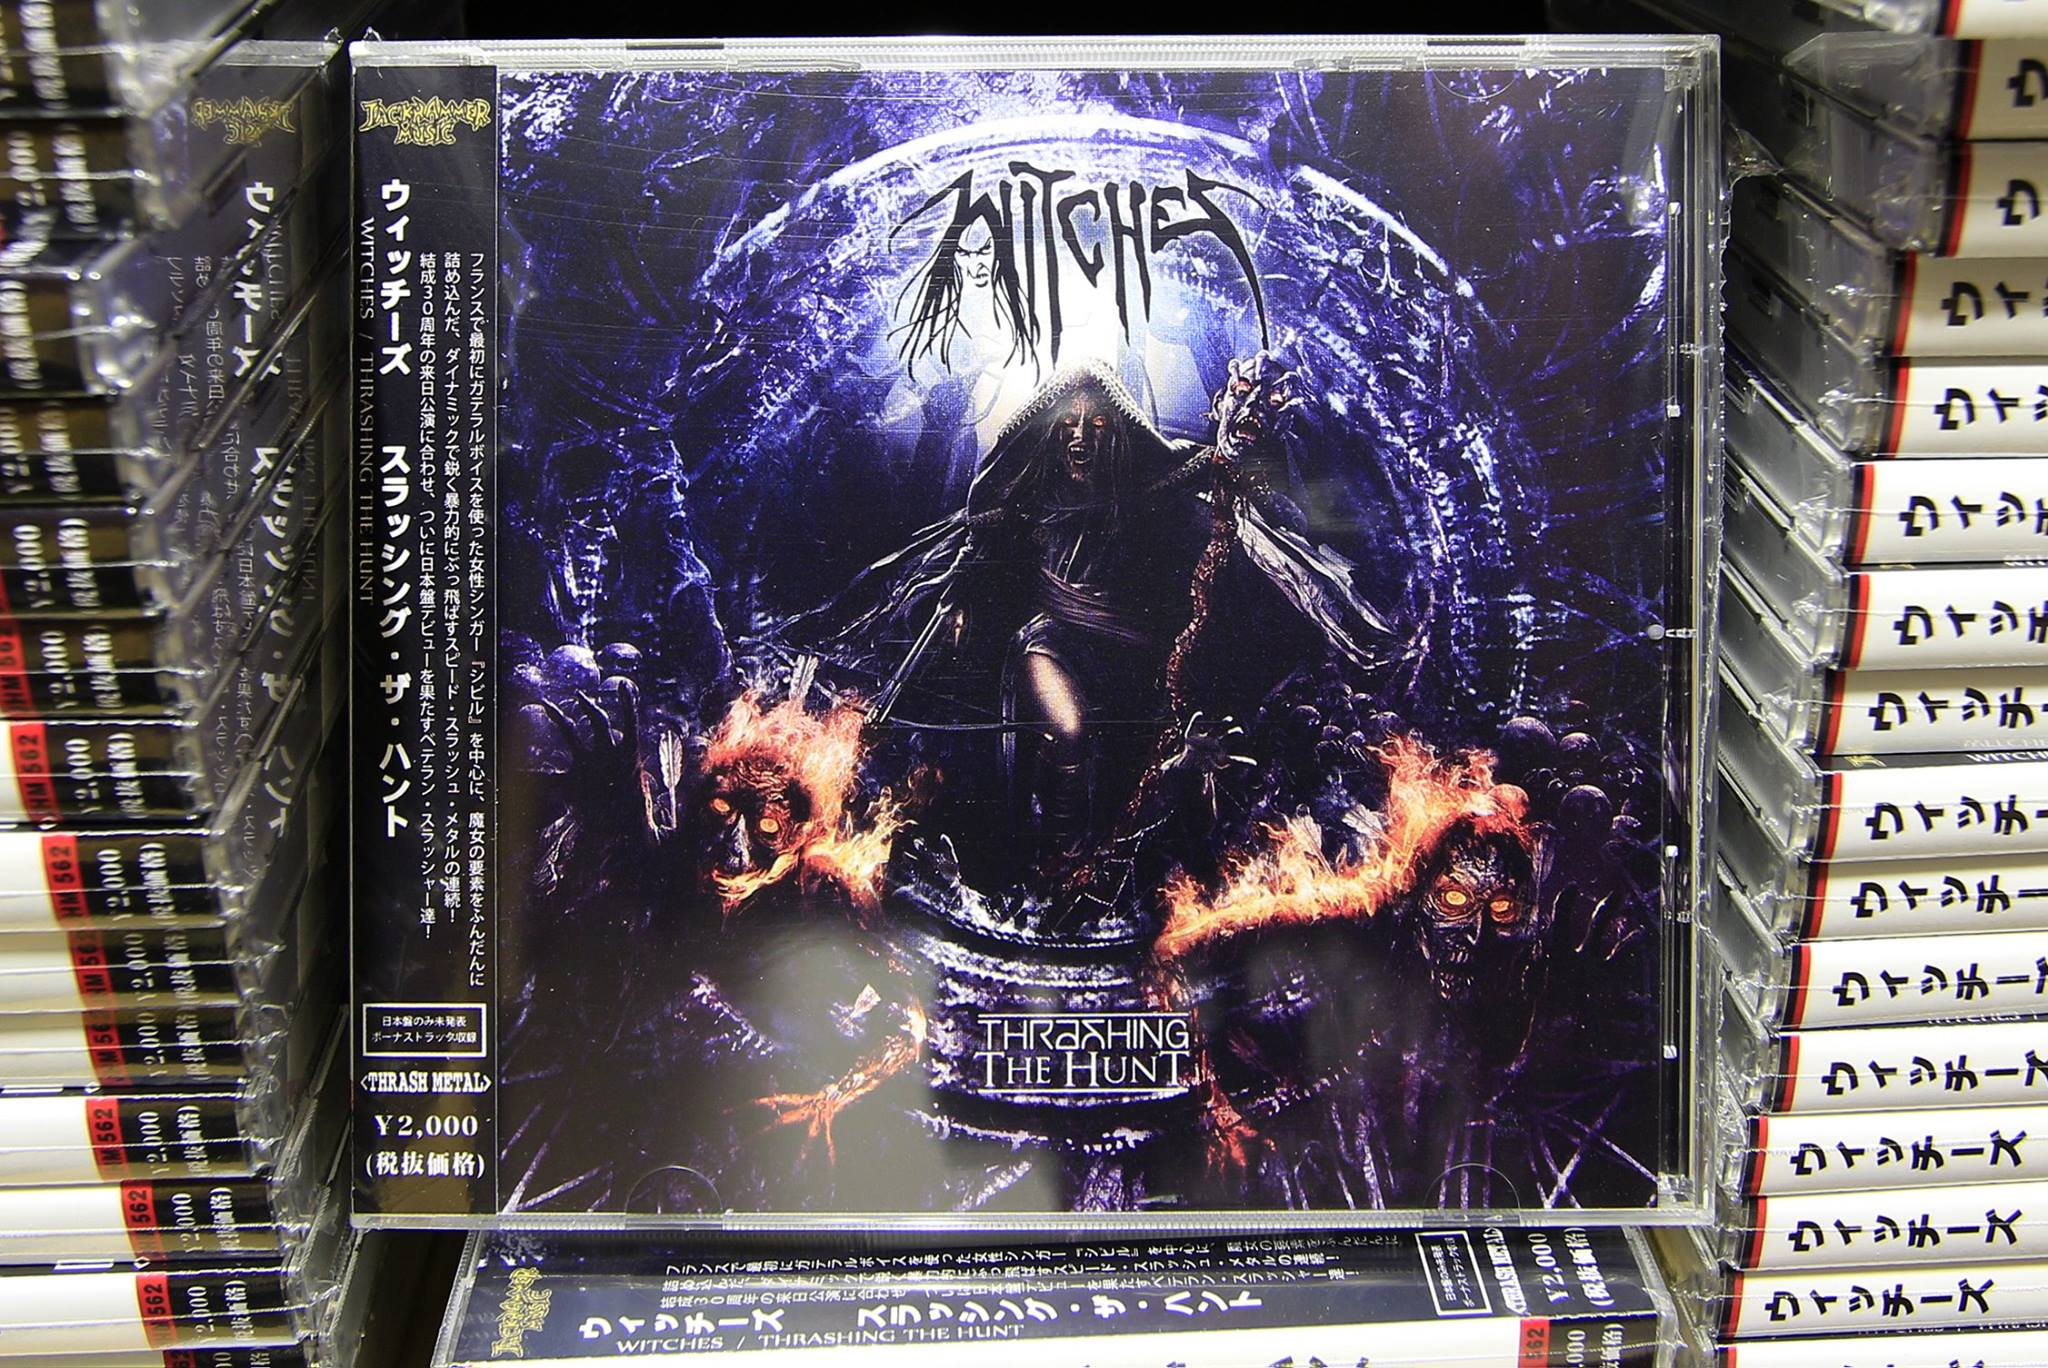 Witches Thrashing The Hunt CD Japanese Edition